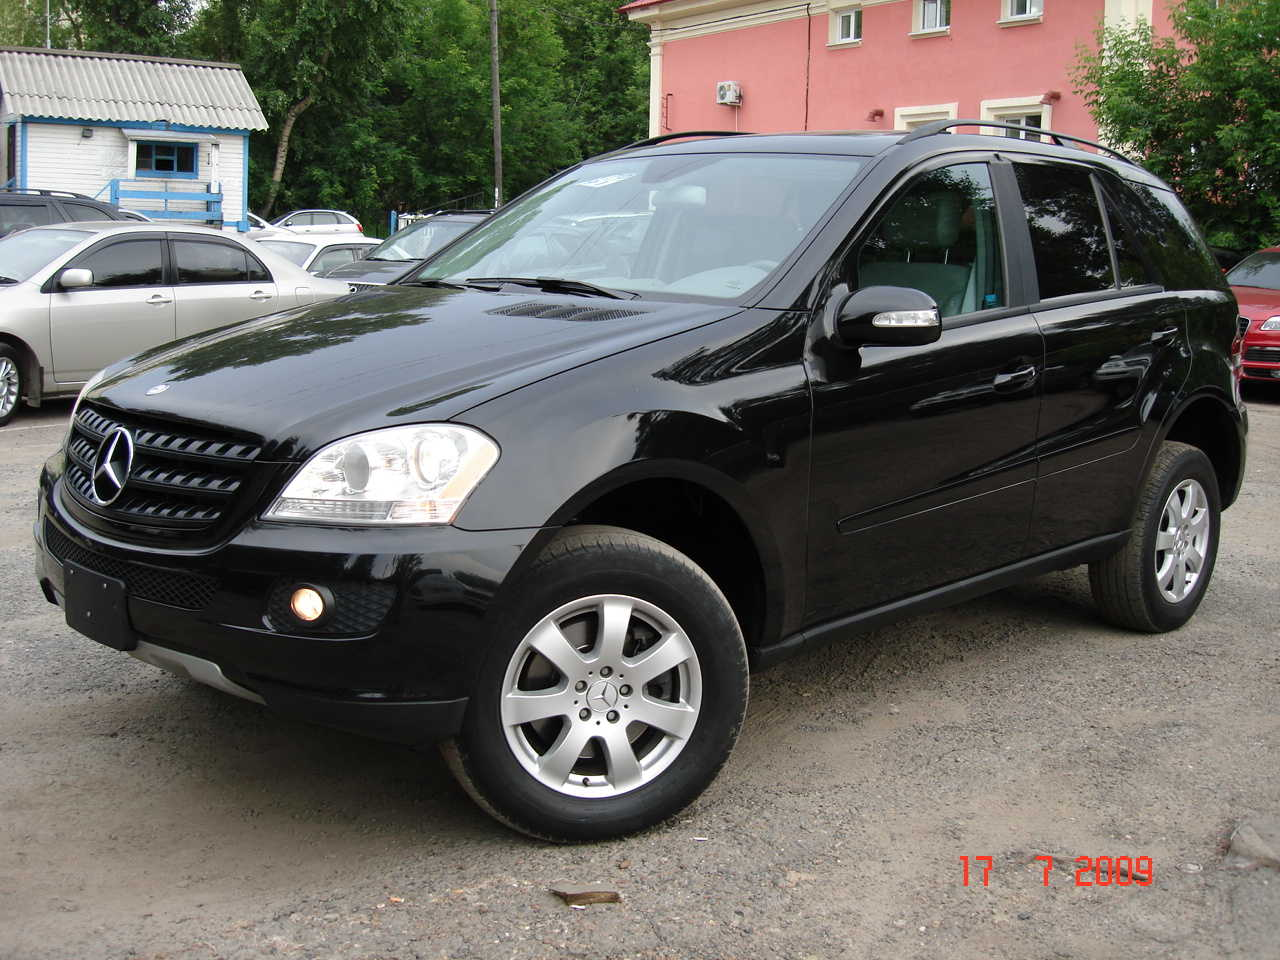 Used 2006 mercedes benz ml class photos 3500cc gasoline for Used mercedes benz ml for sale